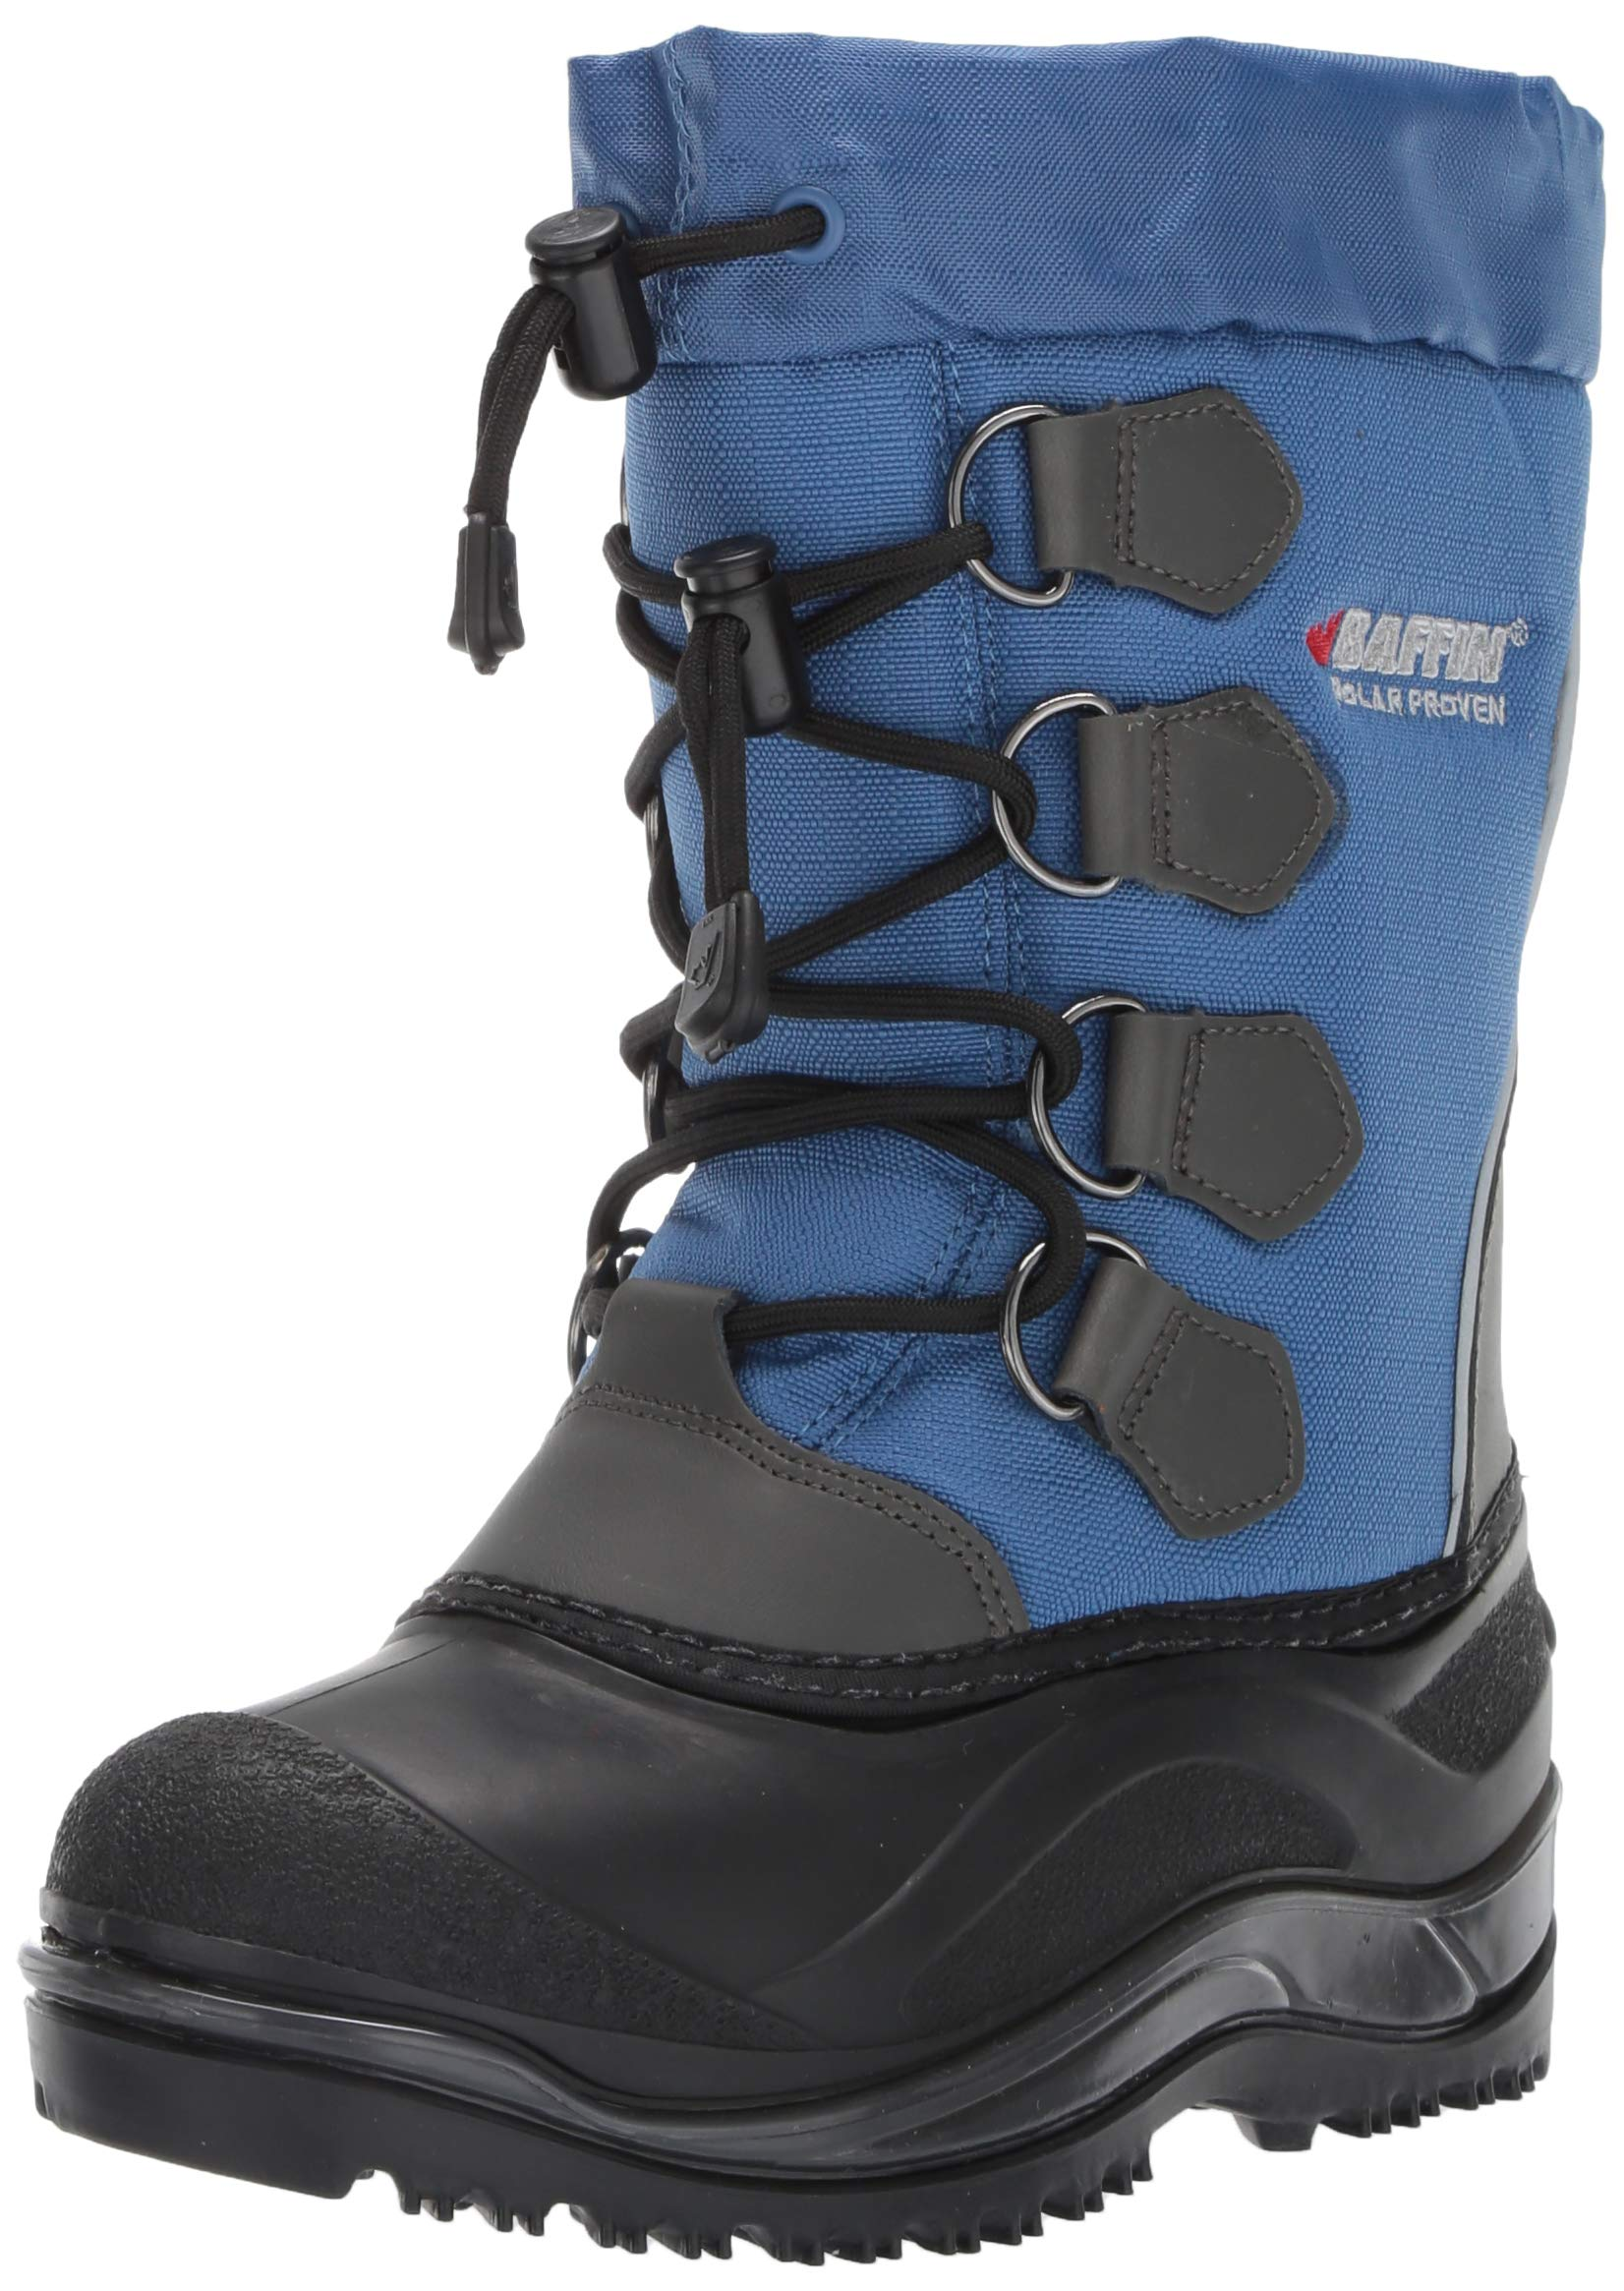 Baffin Unisex SNOWPACK Snow Boot, Blue, 2 Youth US Little Kid